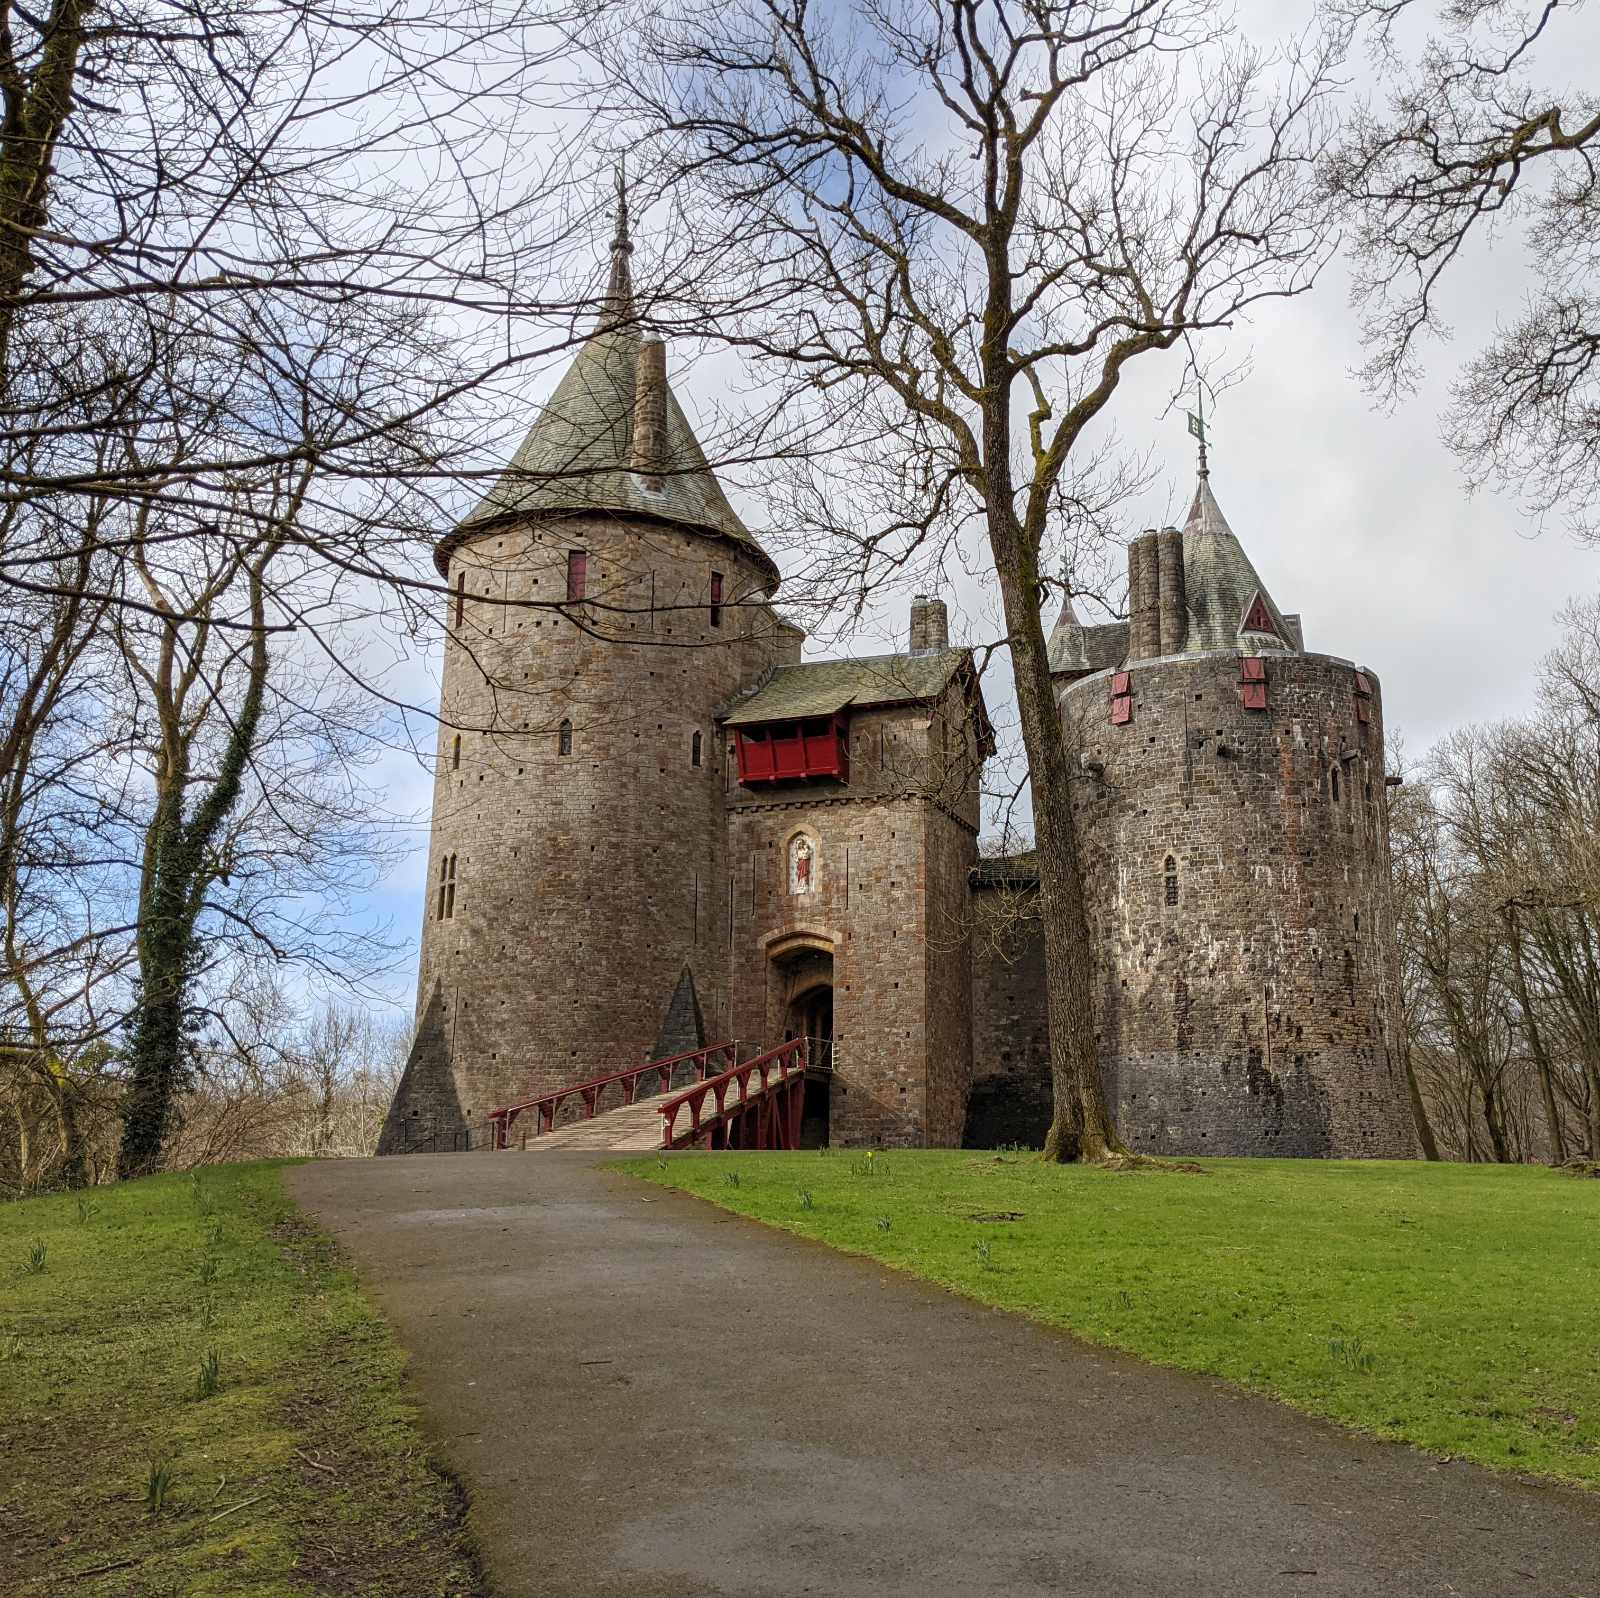 Castell Coch in winter with a cloudy sky